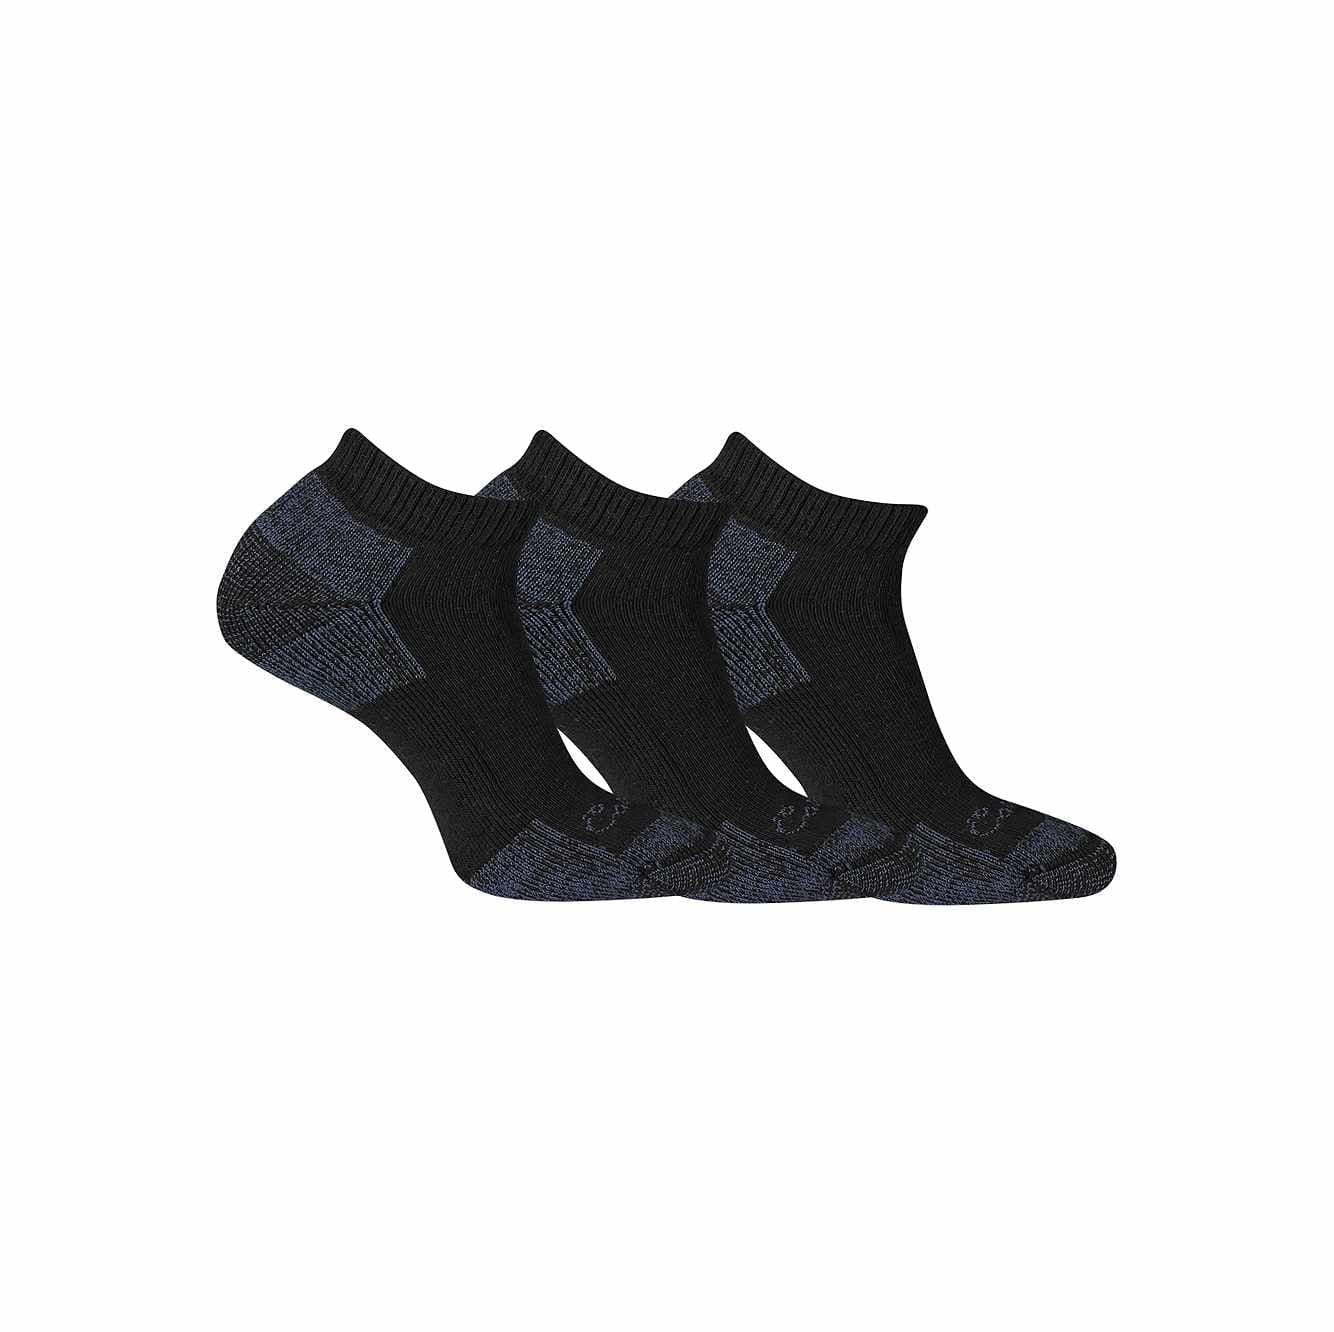 Picture of Cotton Low Cut Sock, 3 Pack in Black